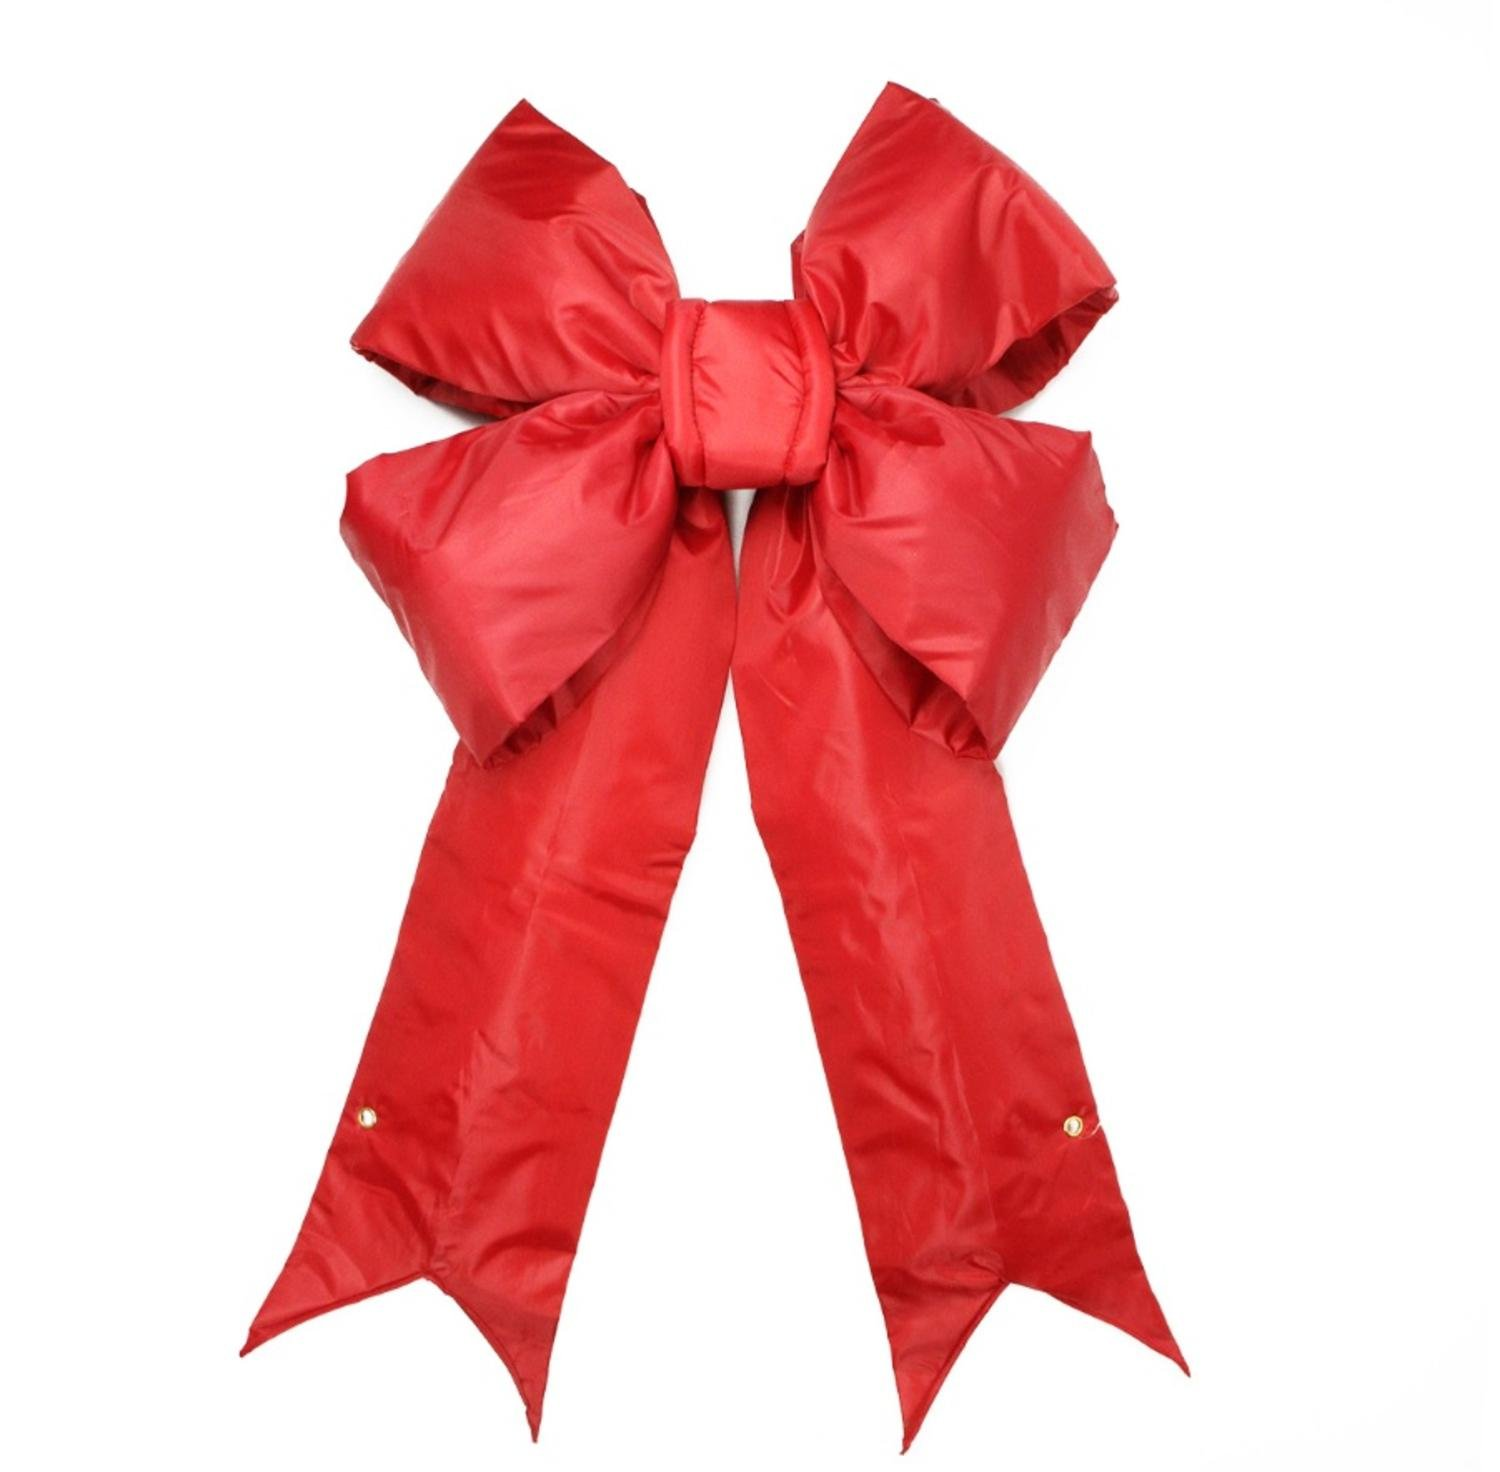 Vickerman 46'' x 68'' Commercial Structural 4-Loop Red Indoor/Outdoor Christmas Bow Decoration